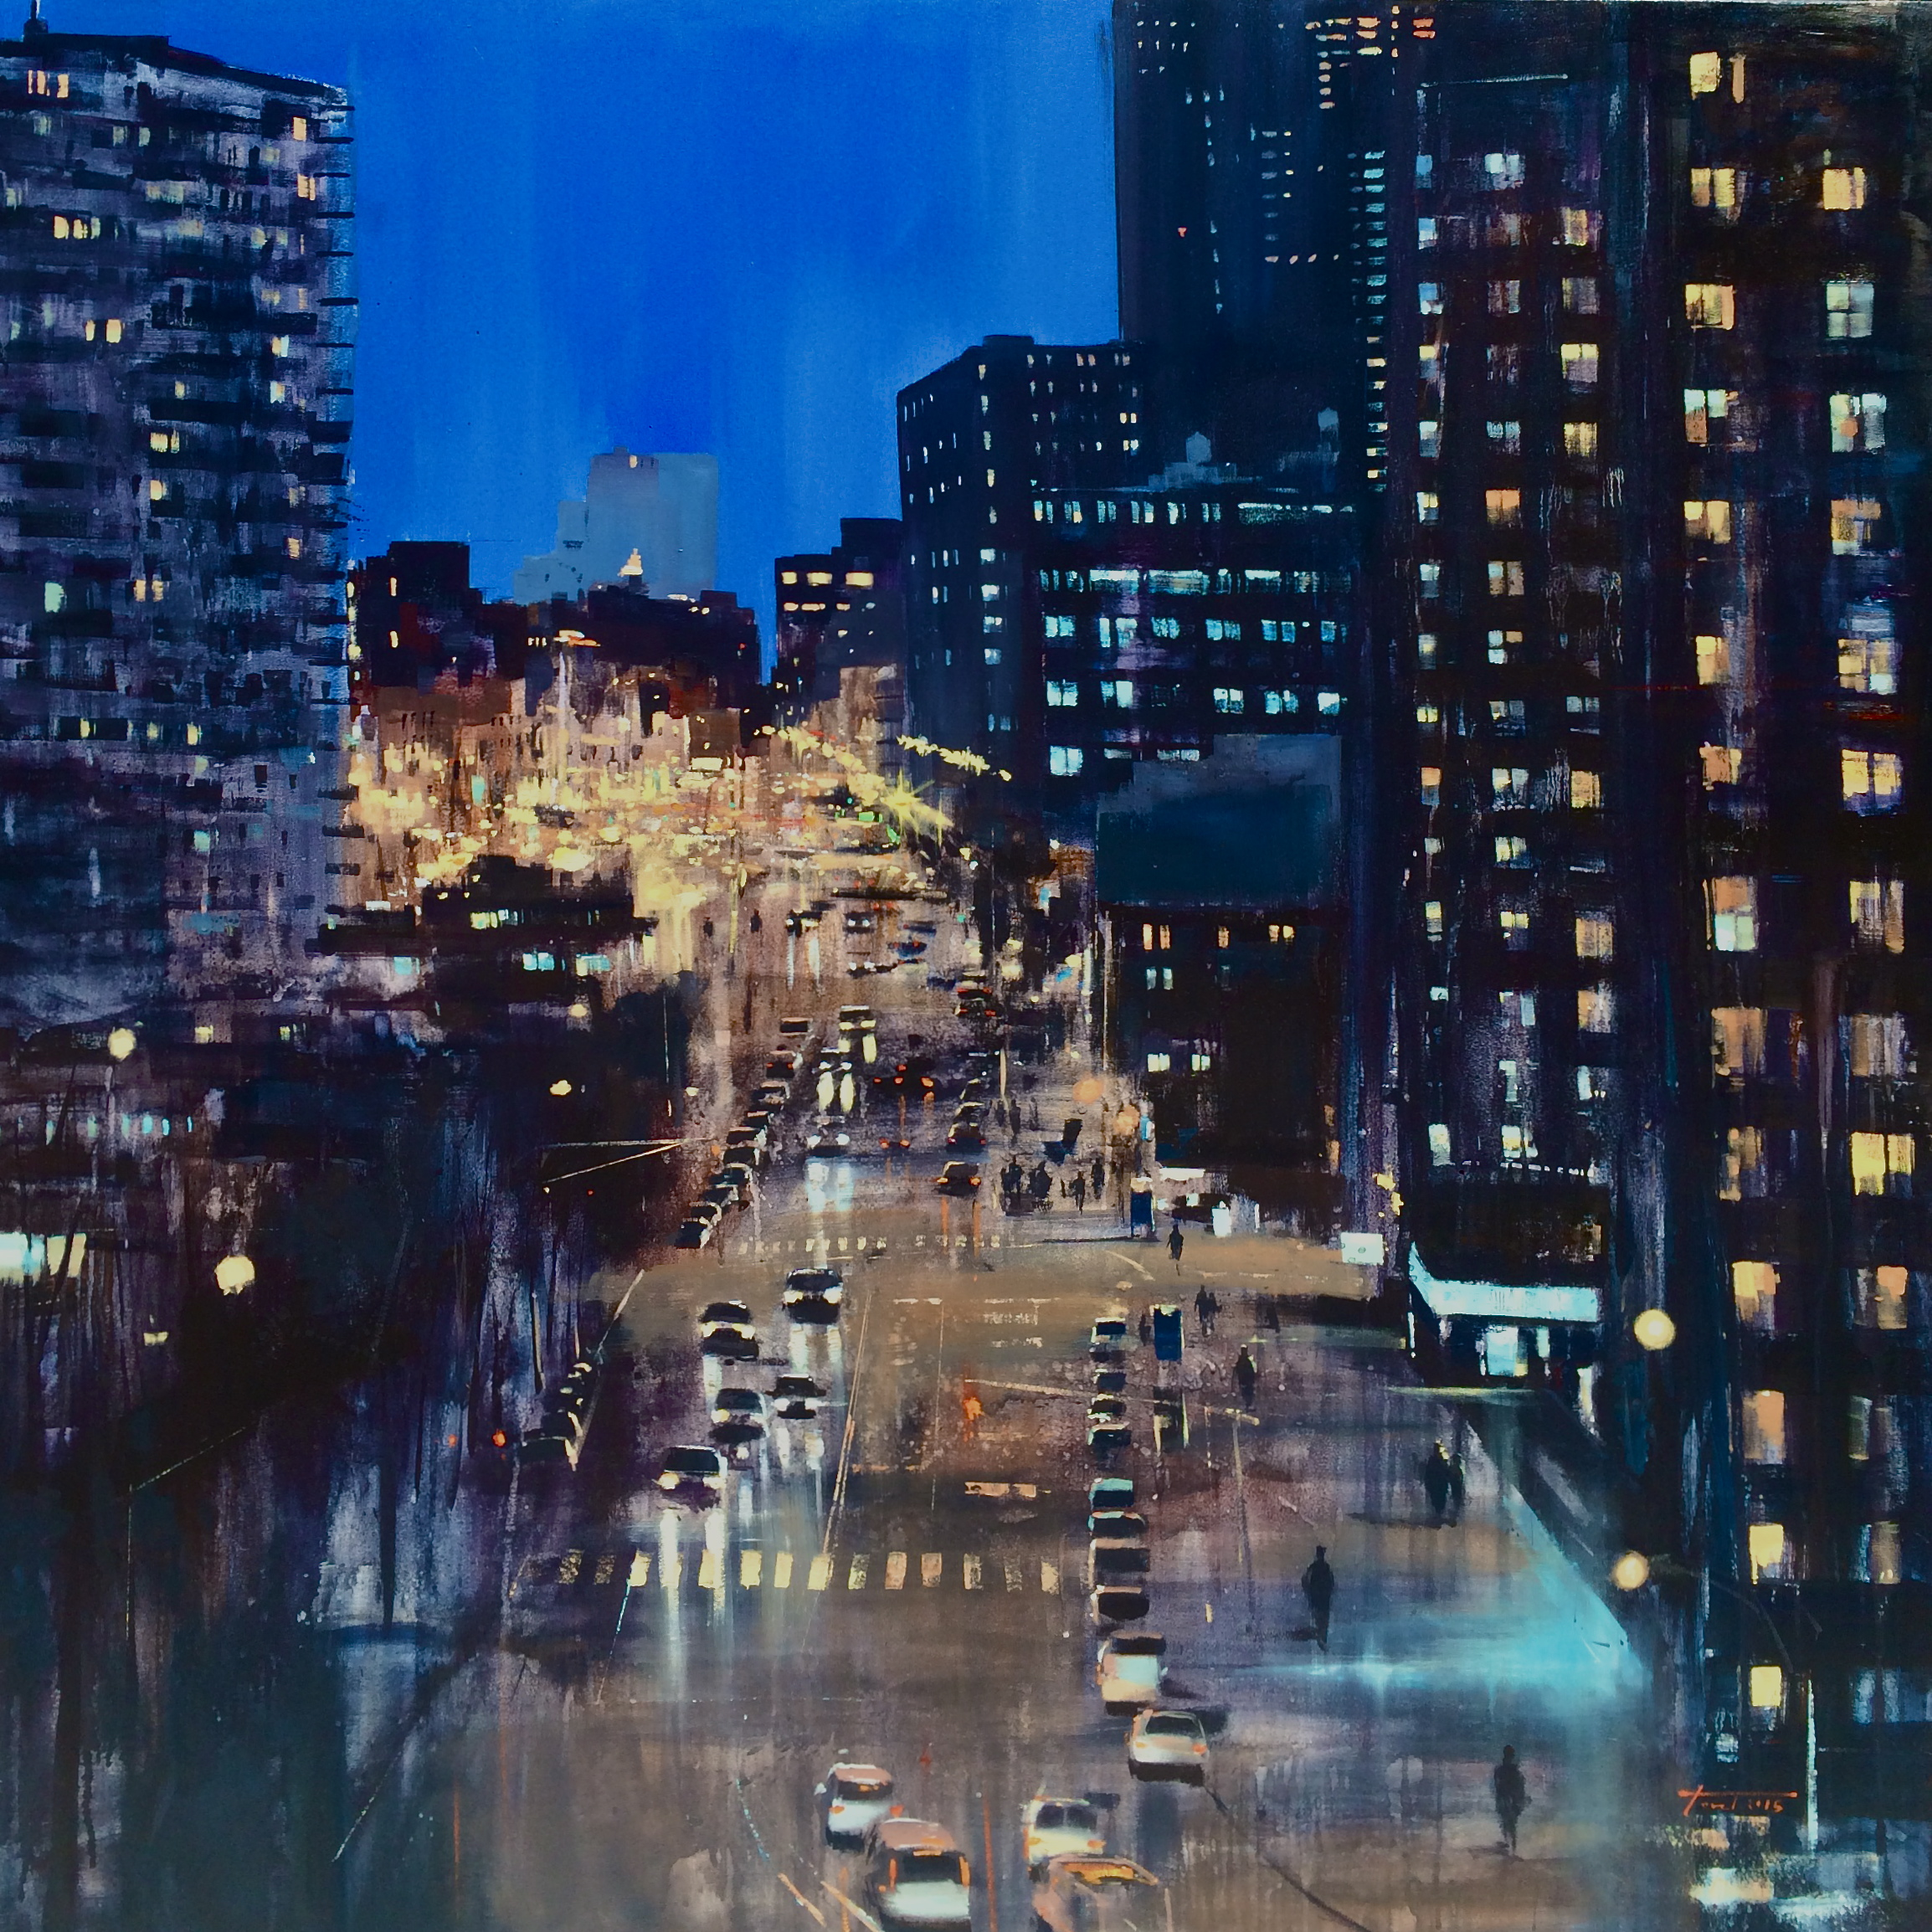 From High Line Park. Óleo sobre lienzo. 130x130cm.